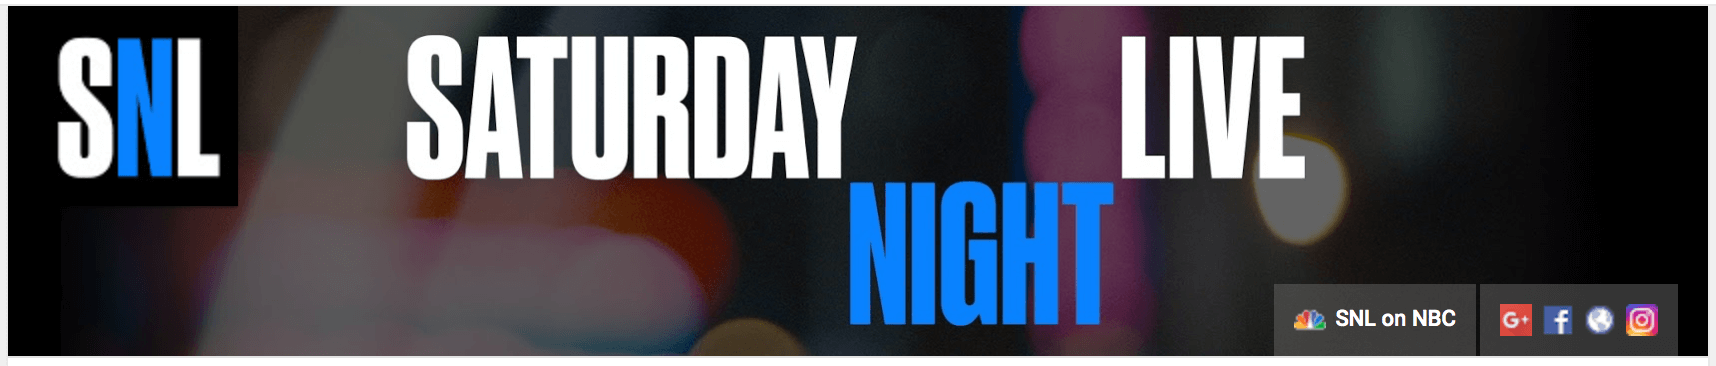 SNL youtube channel art